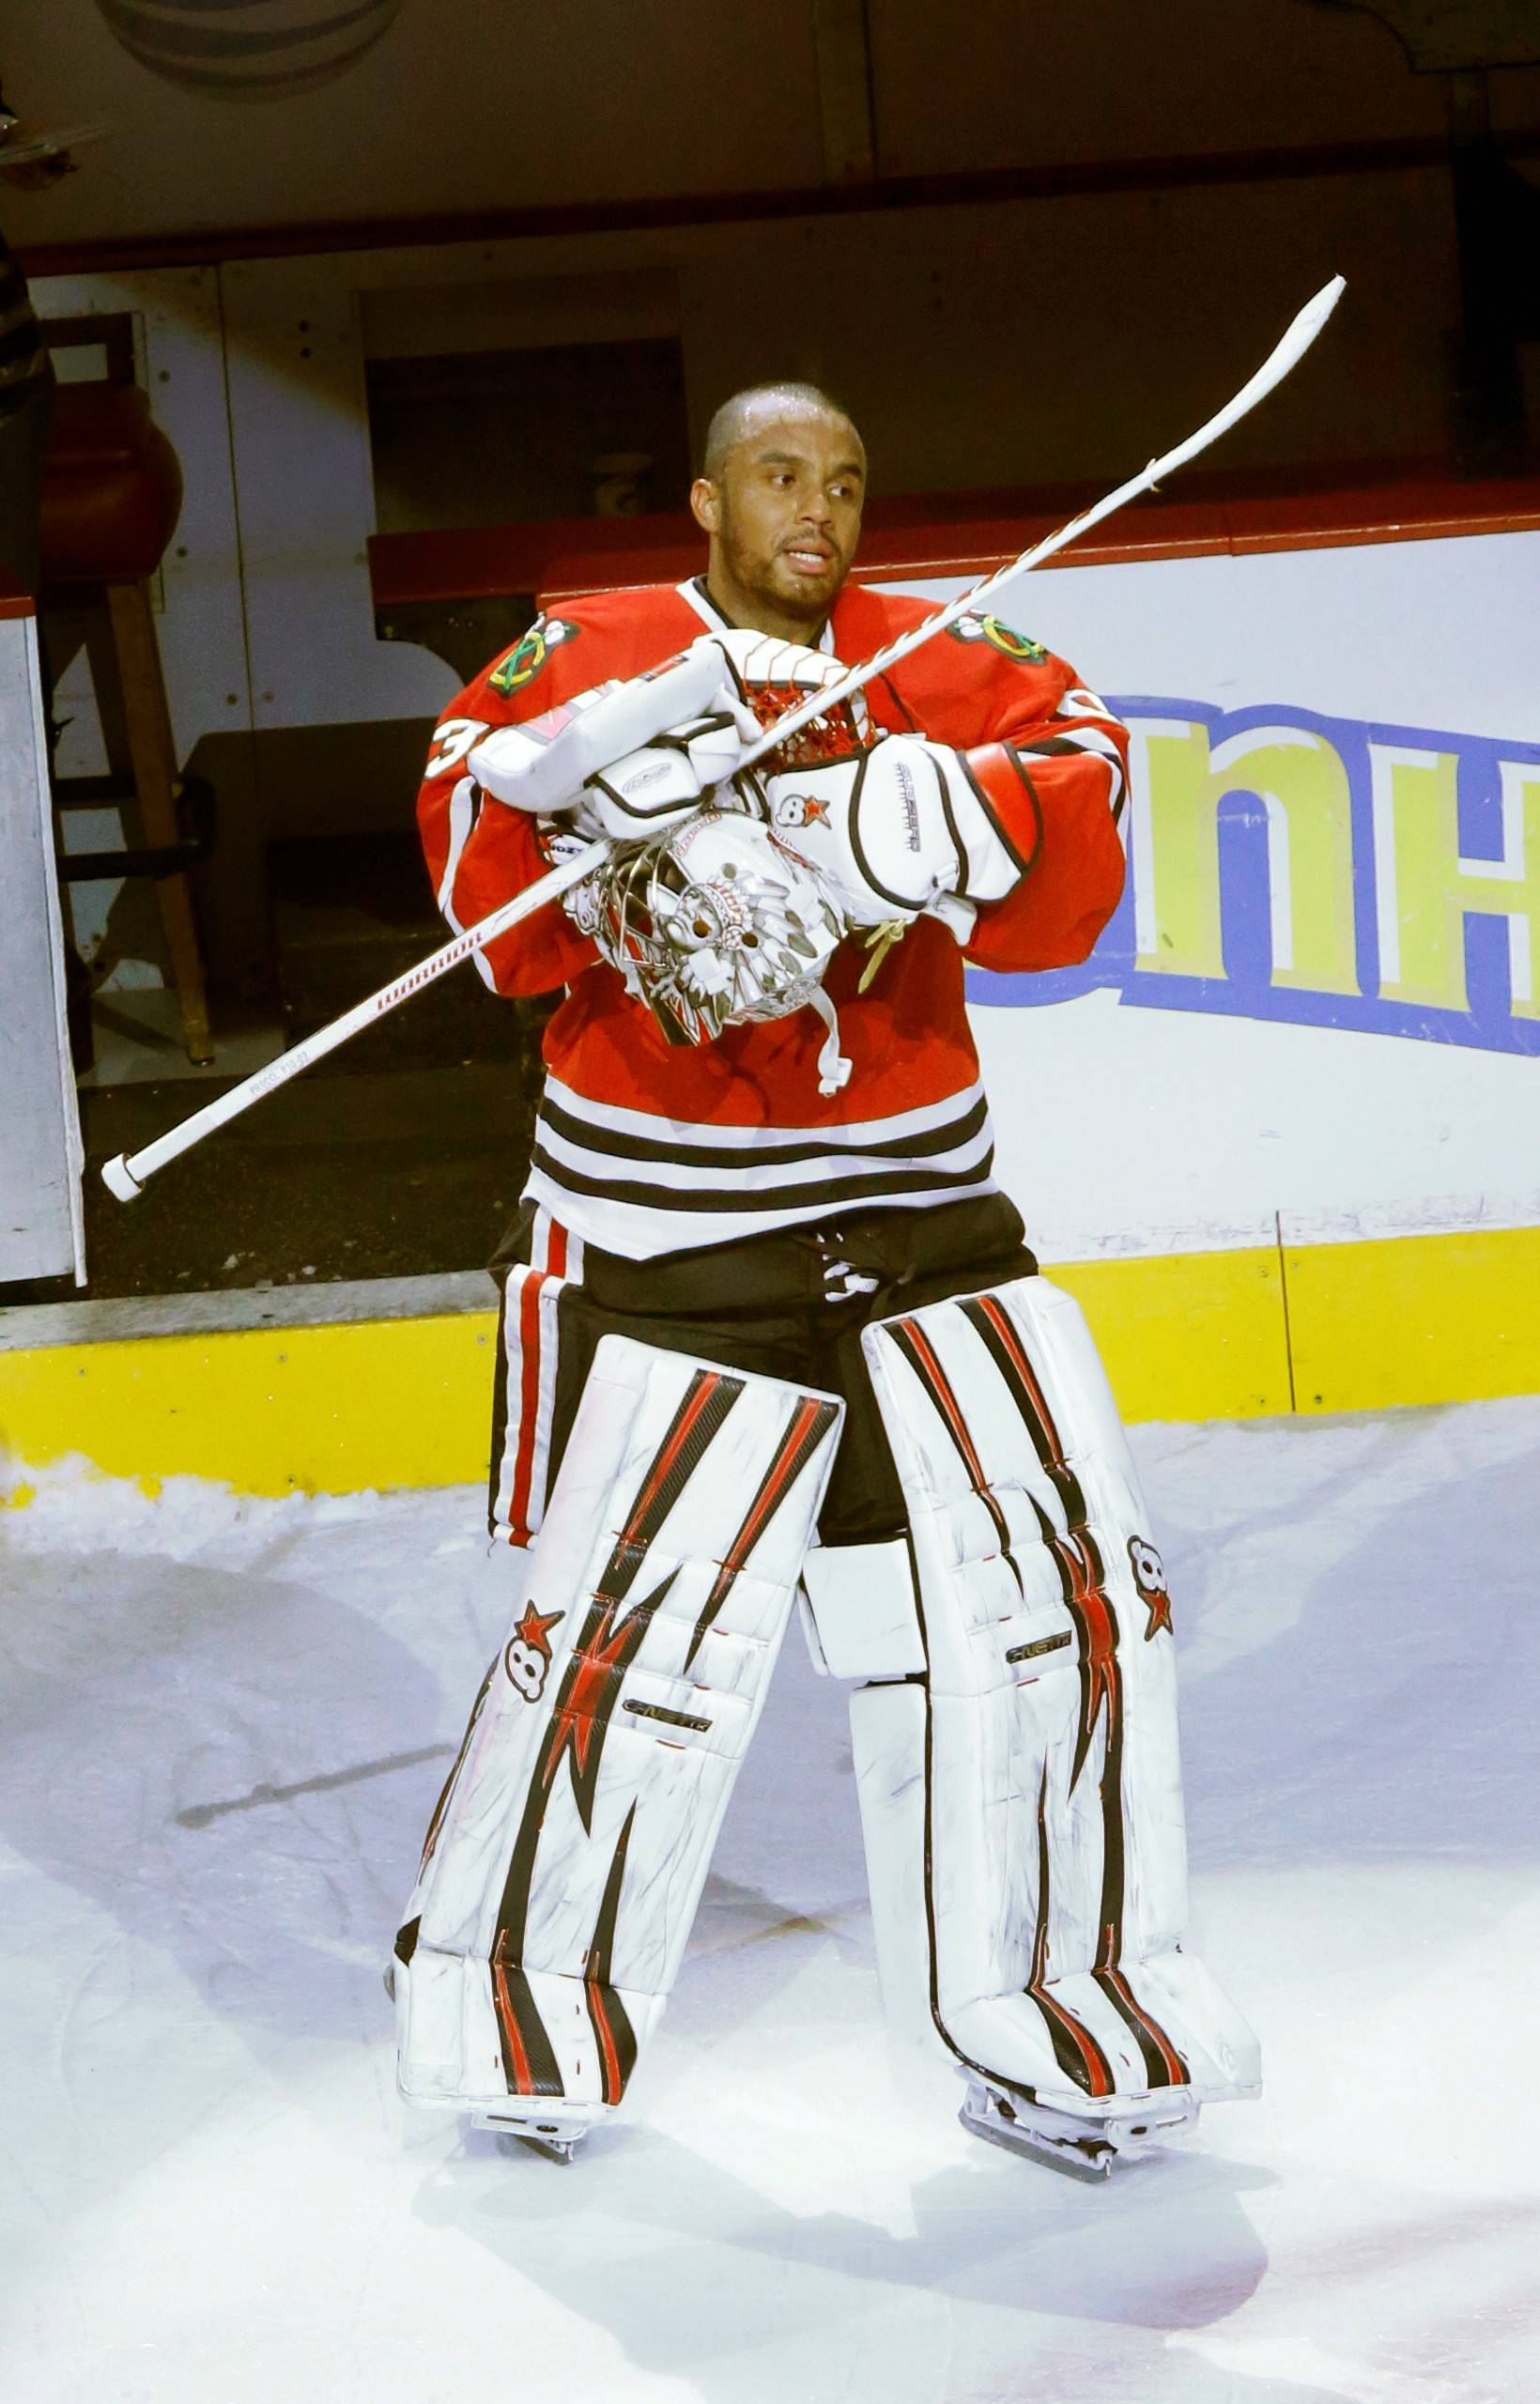 Chicago Blackhawks goalie Ray Emery salutes the fans after being named a star of the Blackhawks' 2-0 win over the Calgary Flames after an NHL hockey game Tuesday, March 26, 2013 in Chicago.